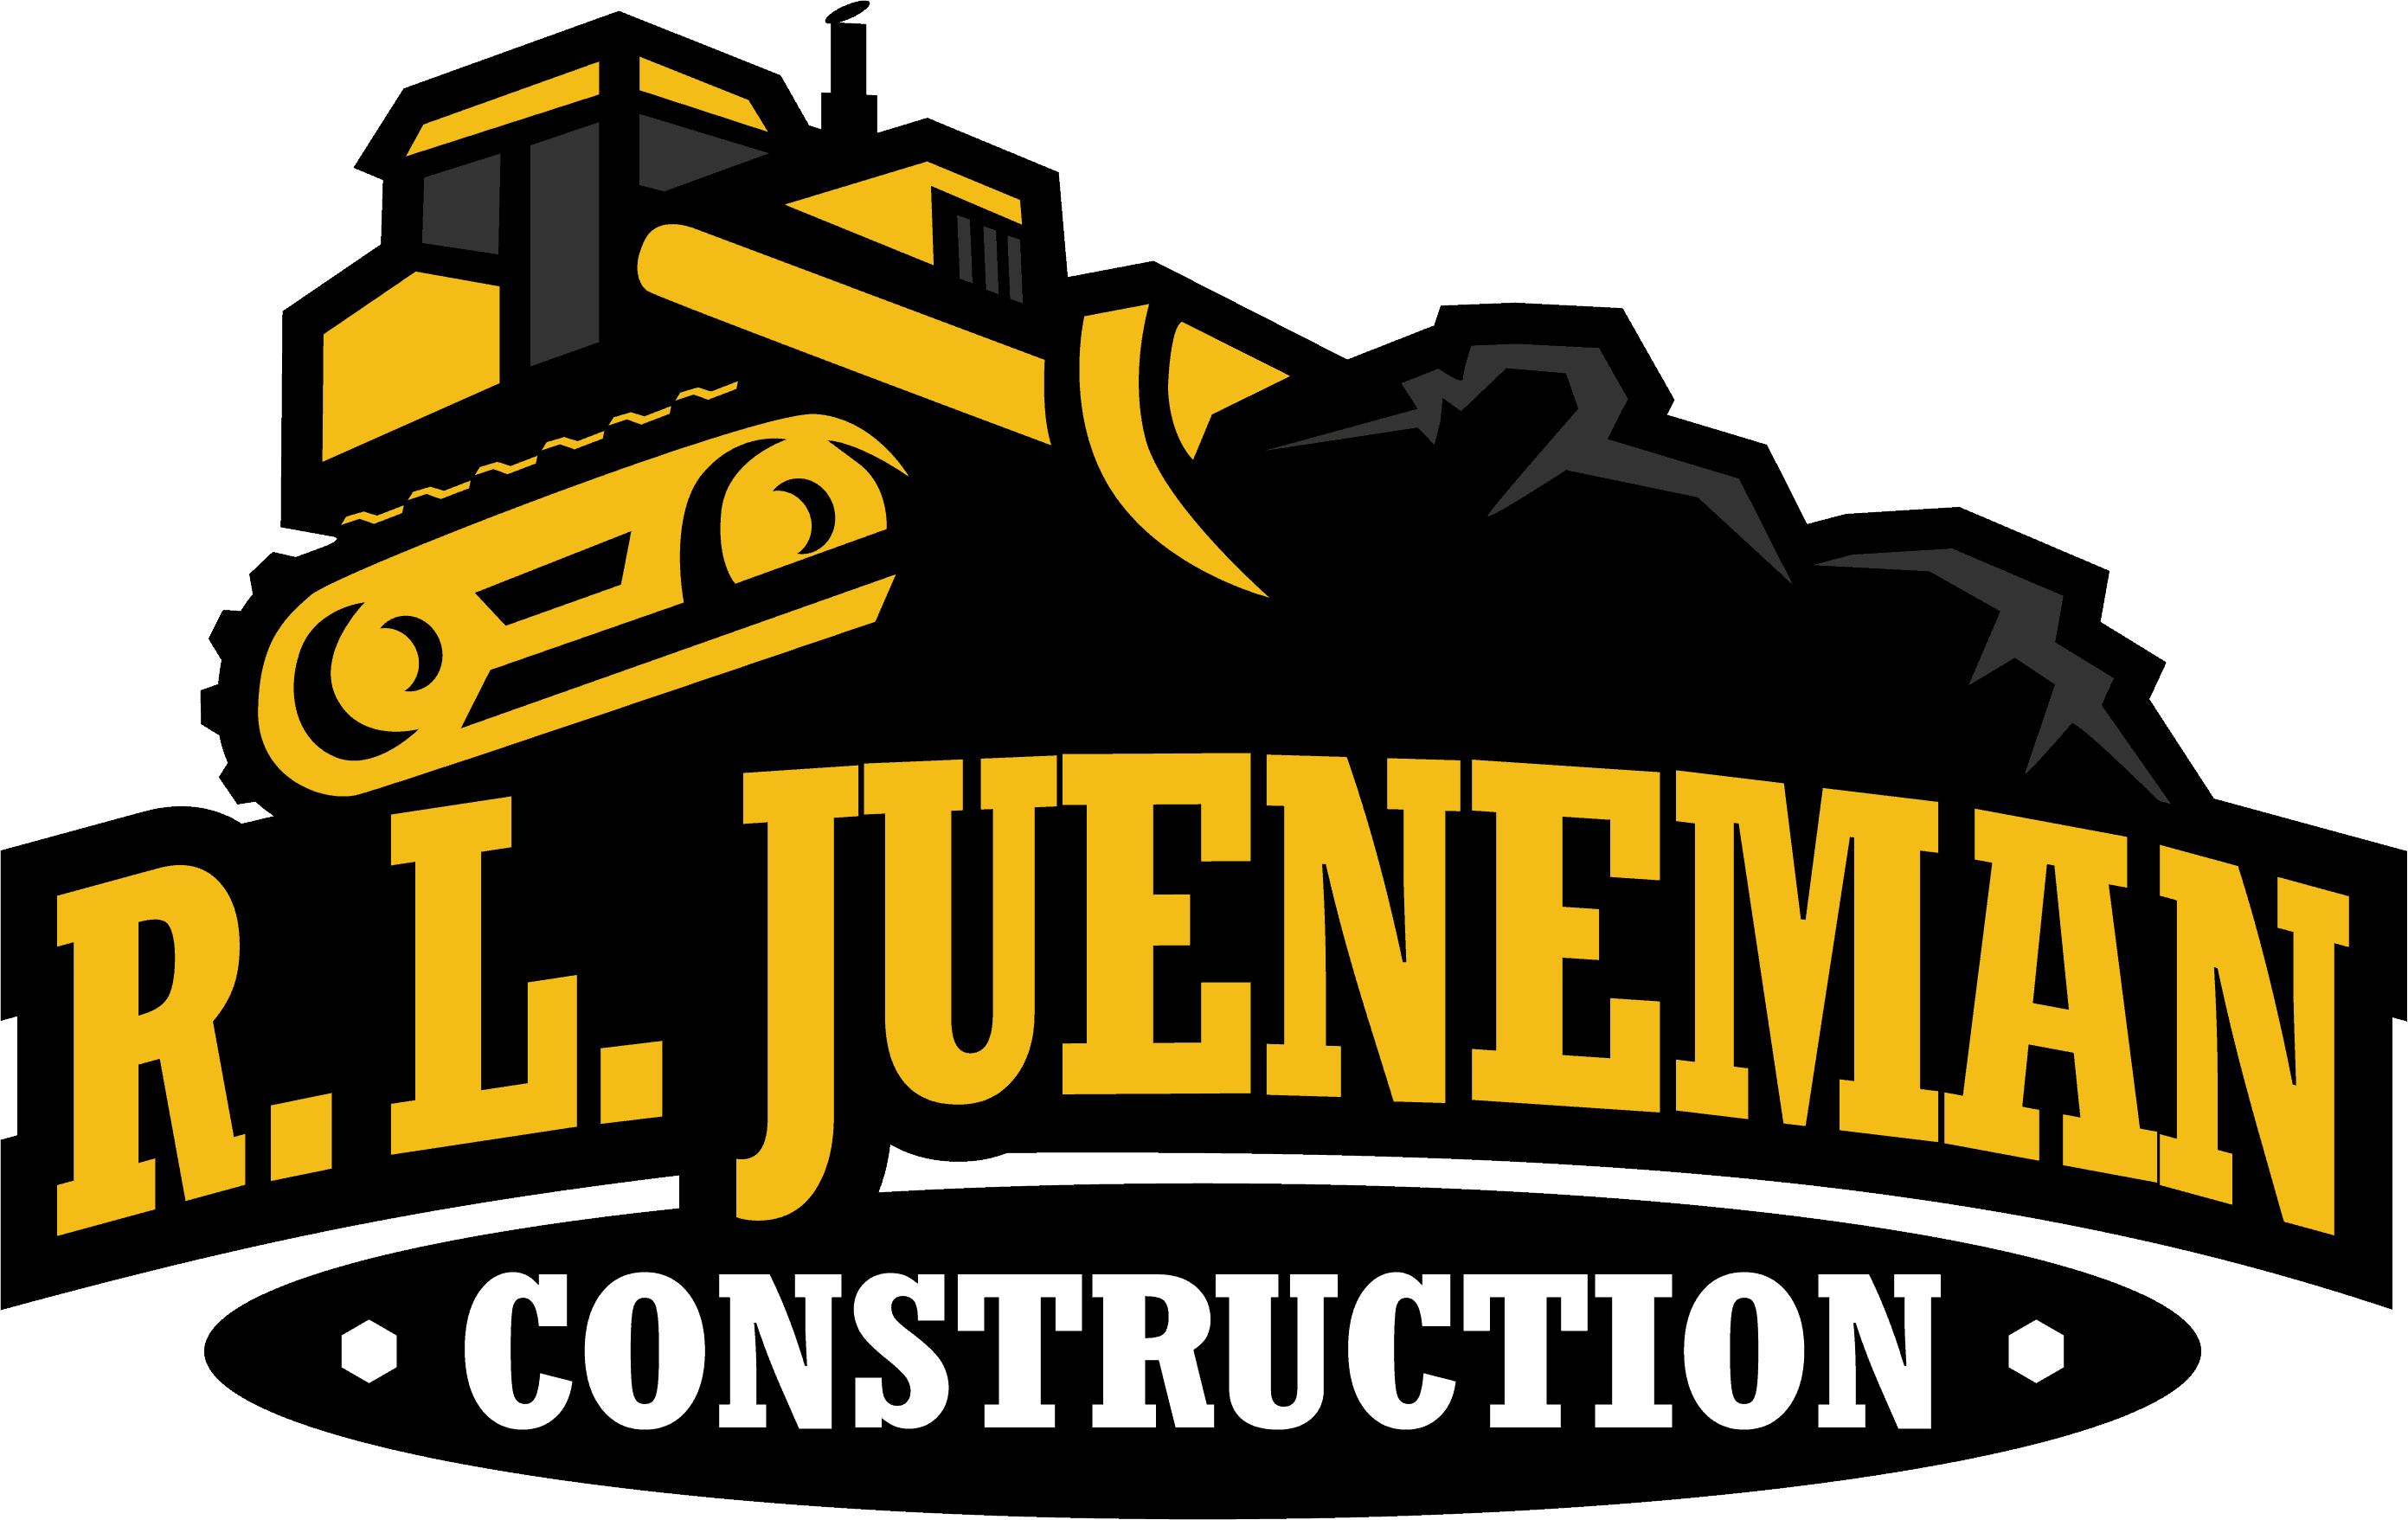 R. L. Jueneman Construction